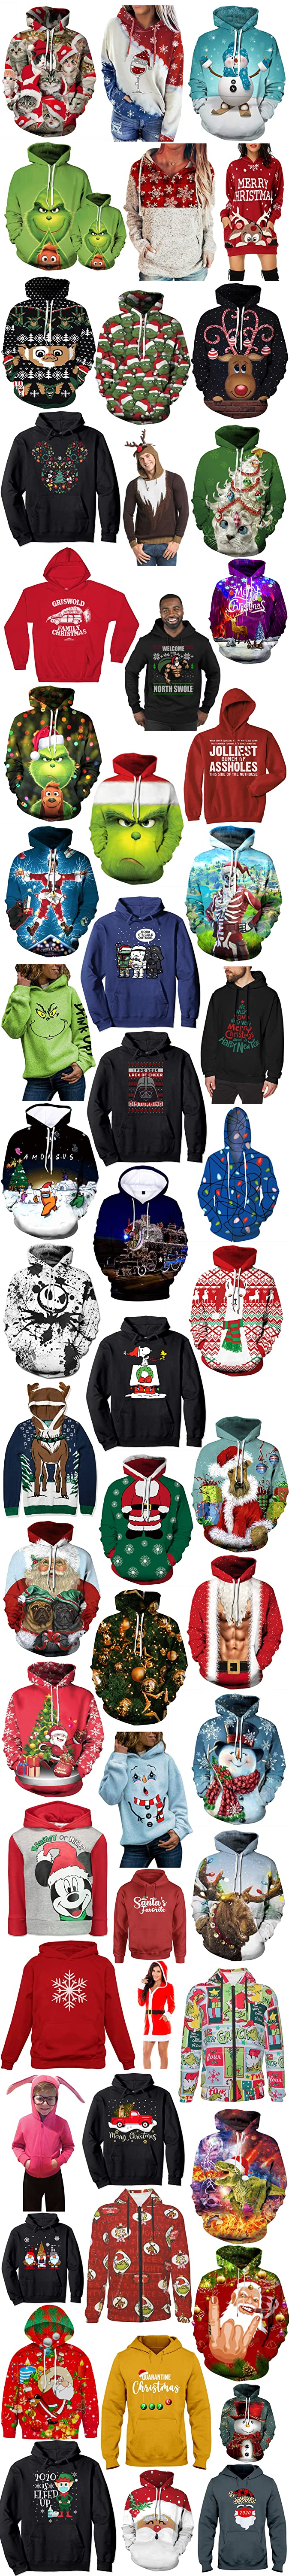 CHRISTMAS THEMED HOODIES FOR MEN AND WOMEN